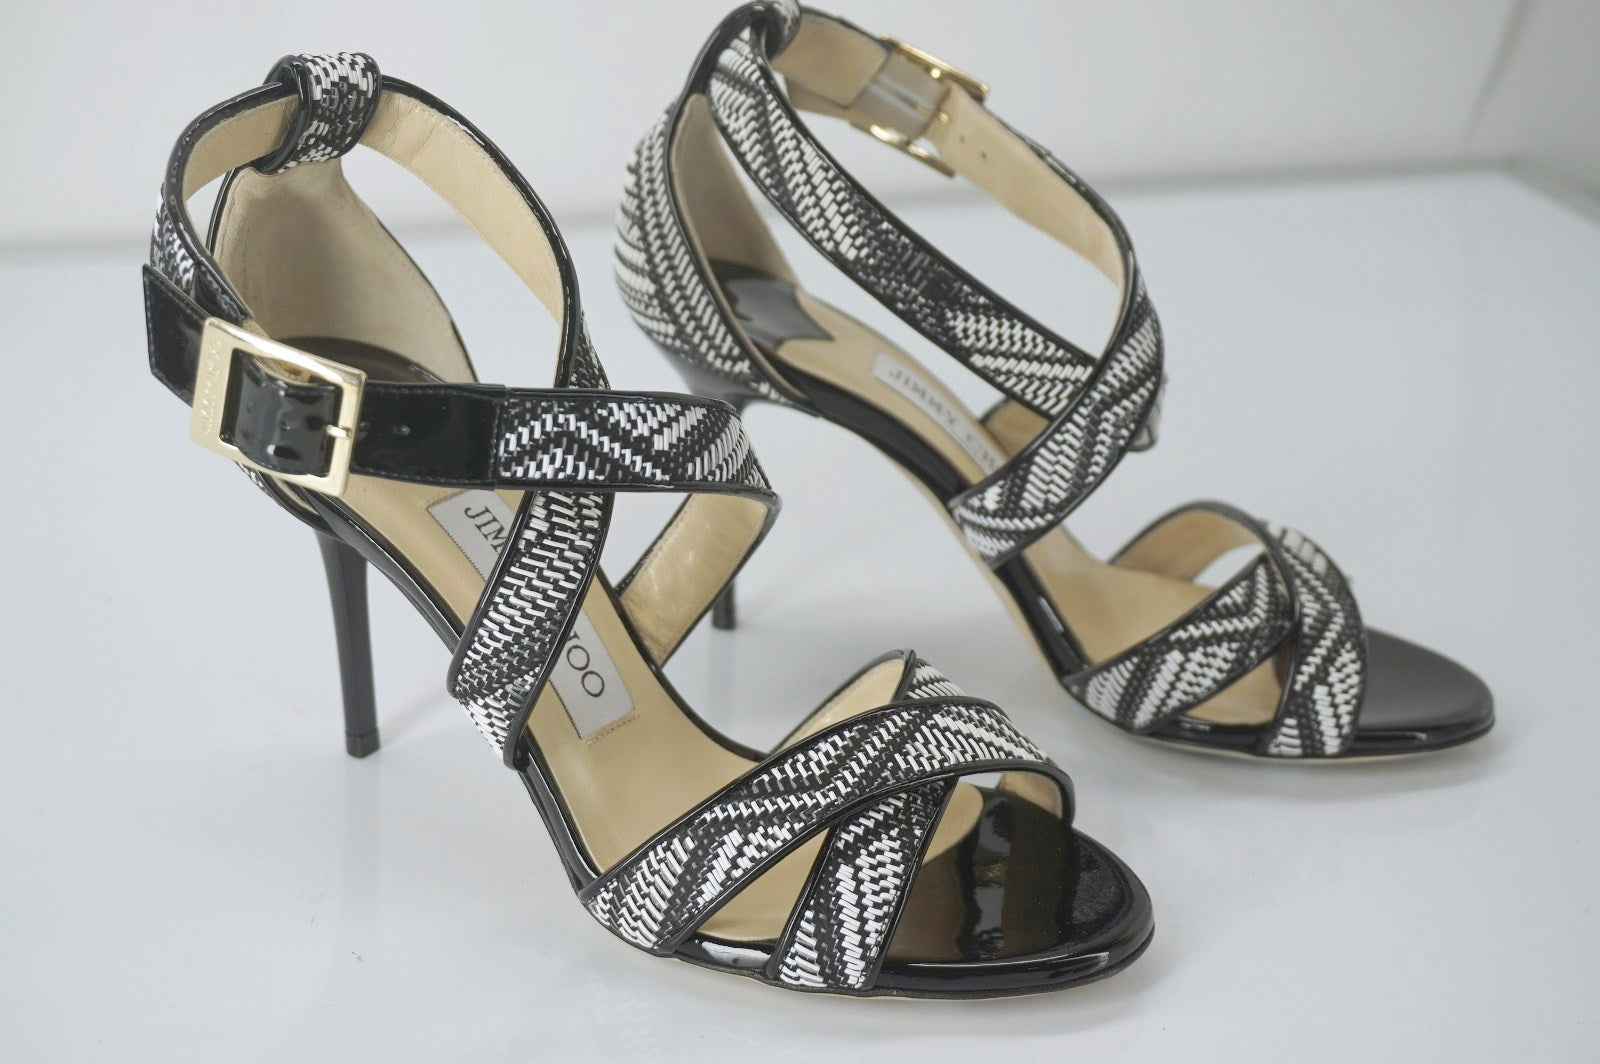 Jimmy Choo Louise Chevron Striped Ankle Strappy Sandals SZ 35.5 New Heels $750